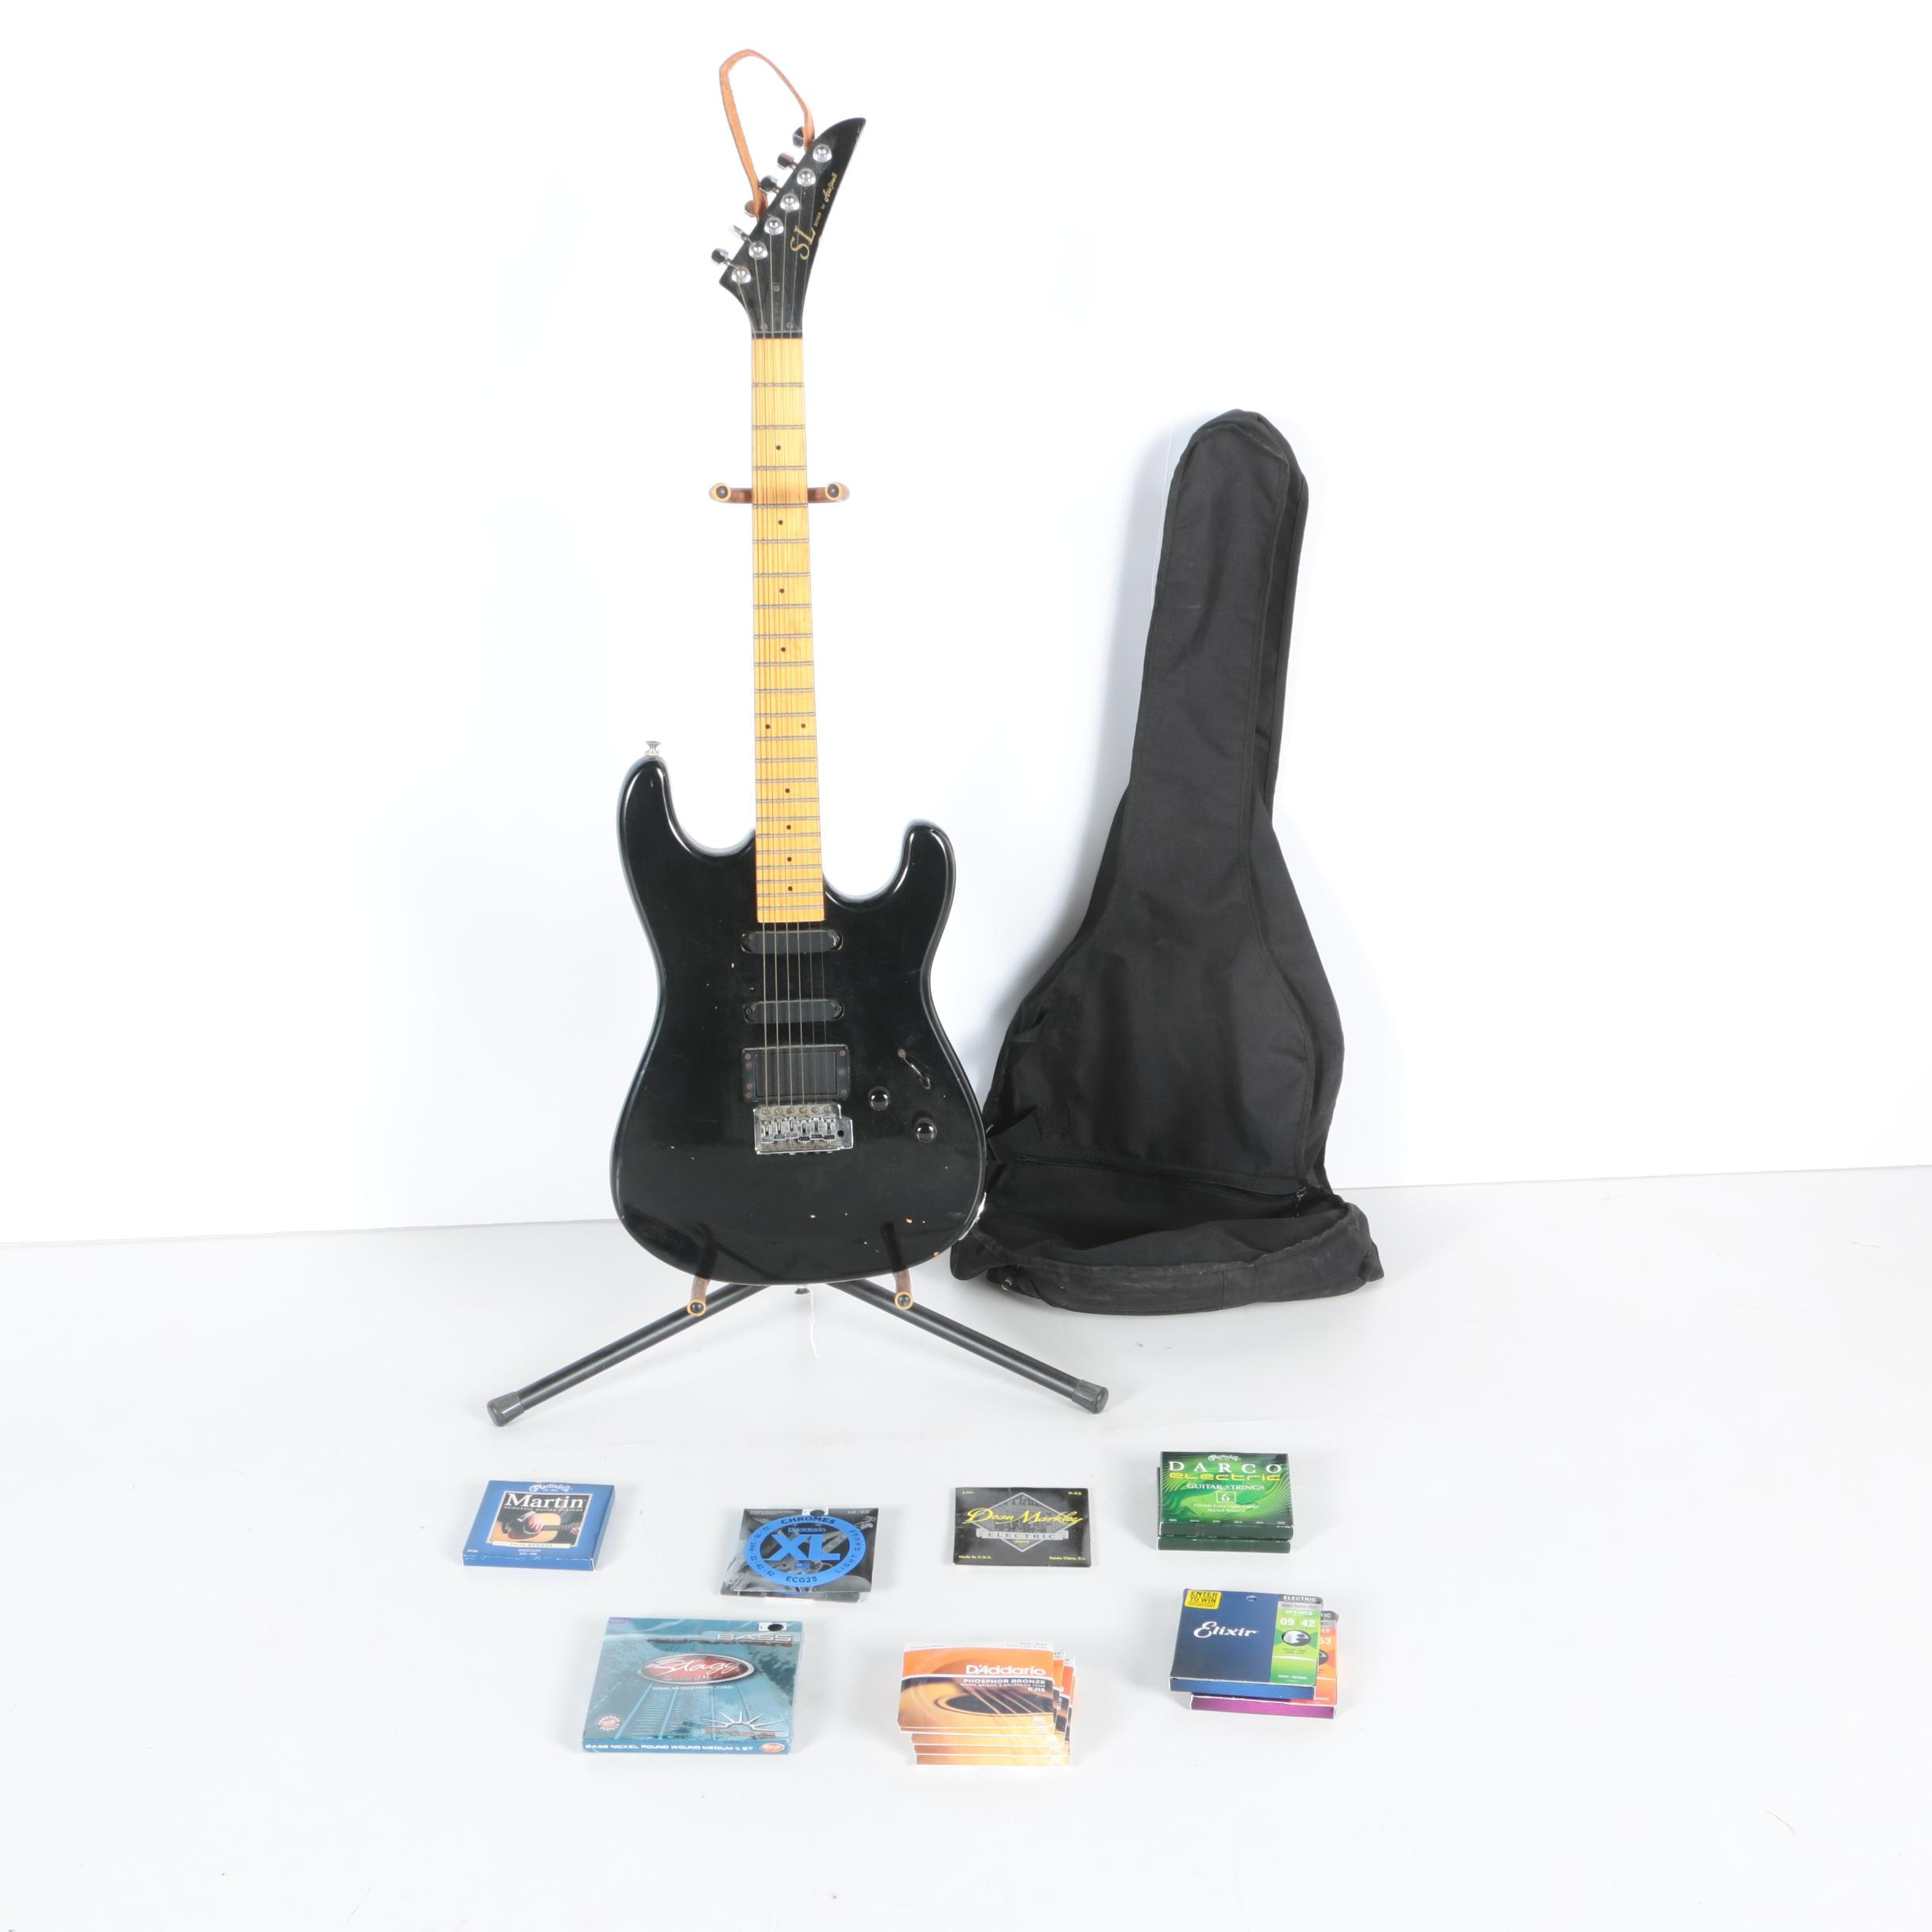 Aria Pro II SL-Series Electric Guitar with Gig Bag and Accessories